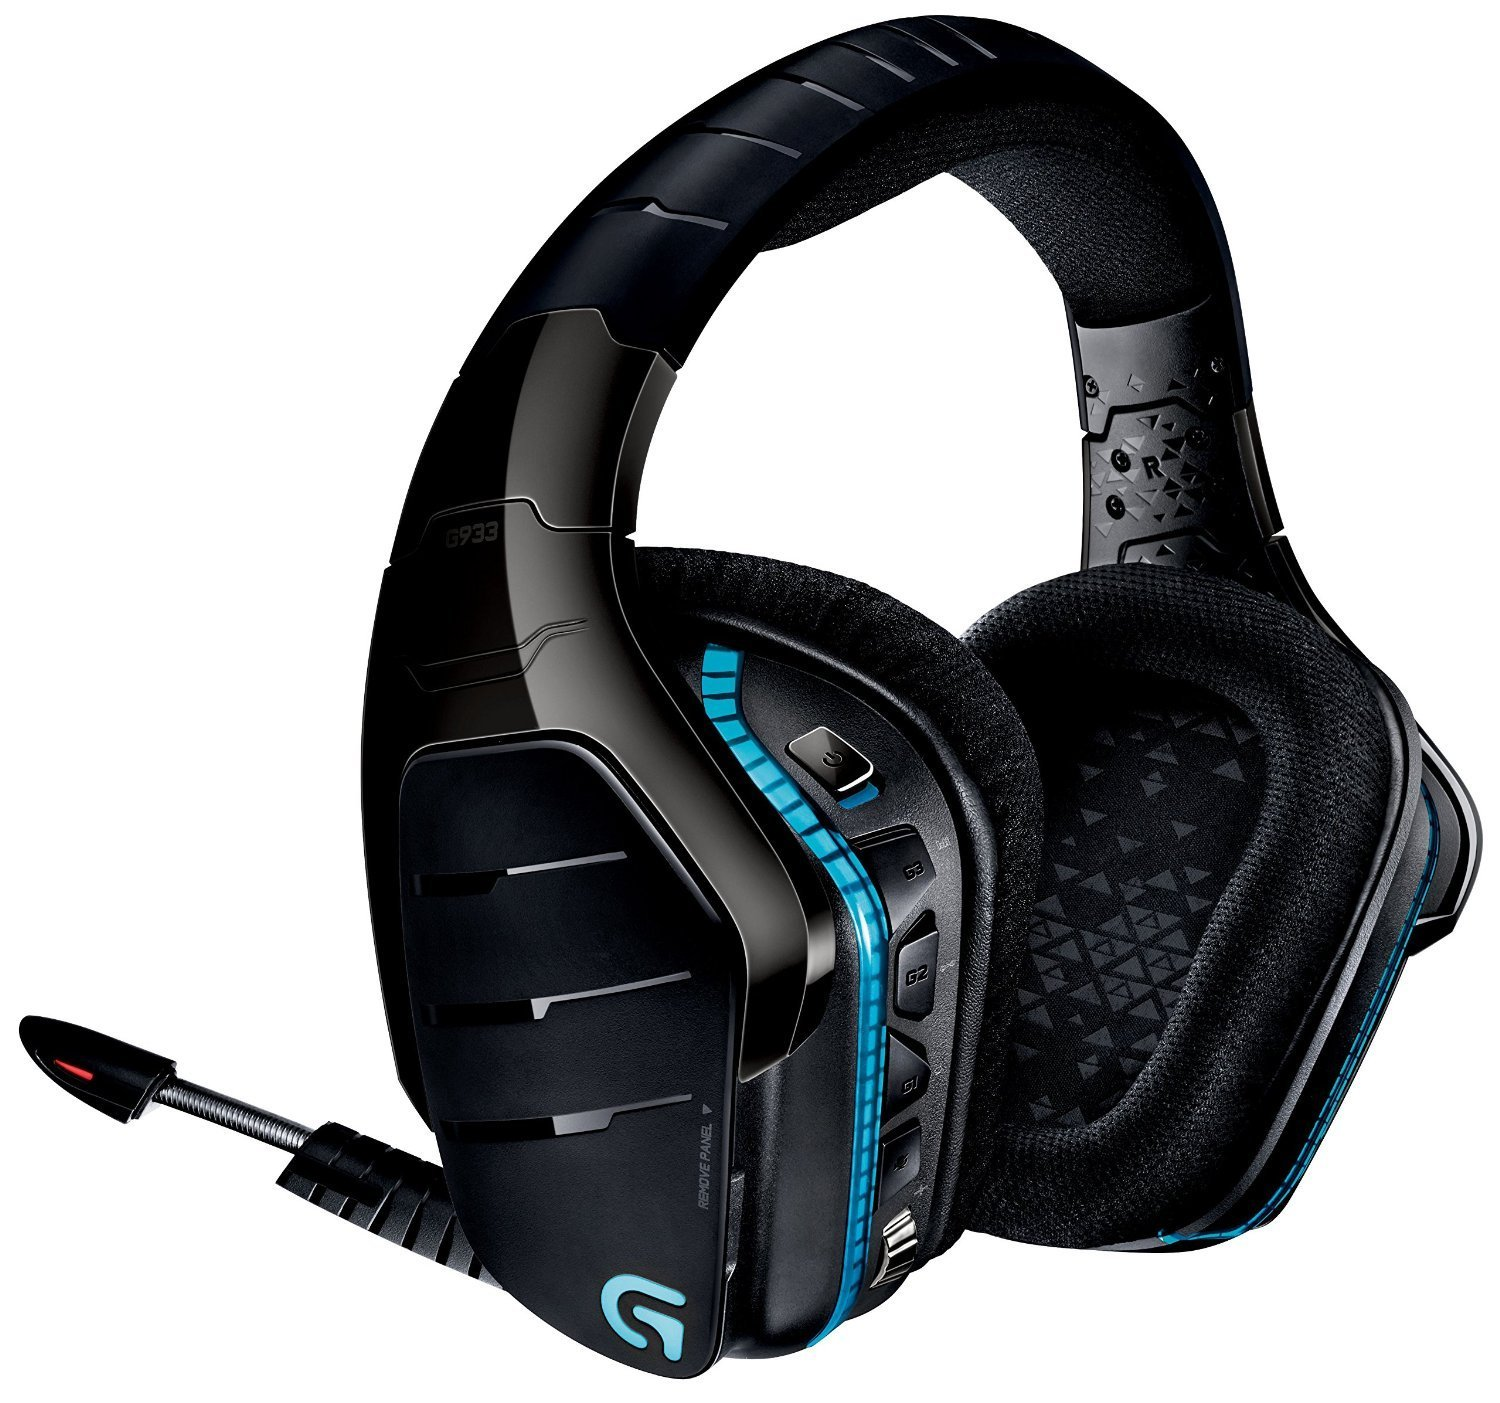 Logitech G933 Artemis Spectrum Reviewed - Buyer's Guide